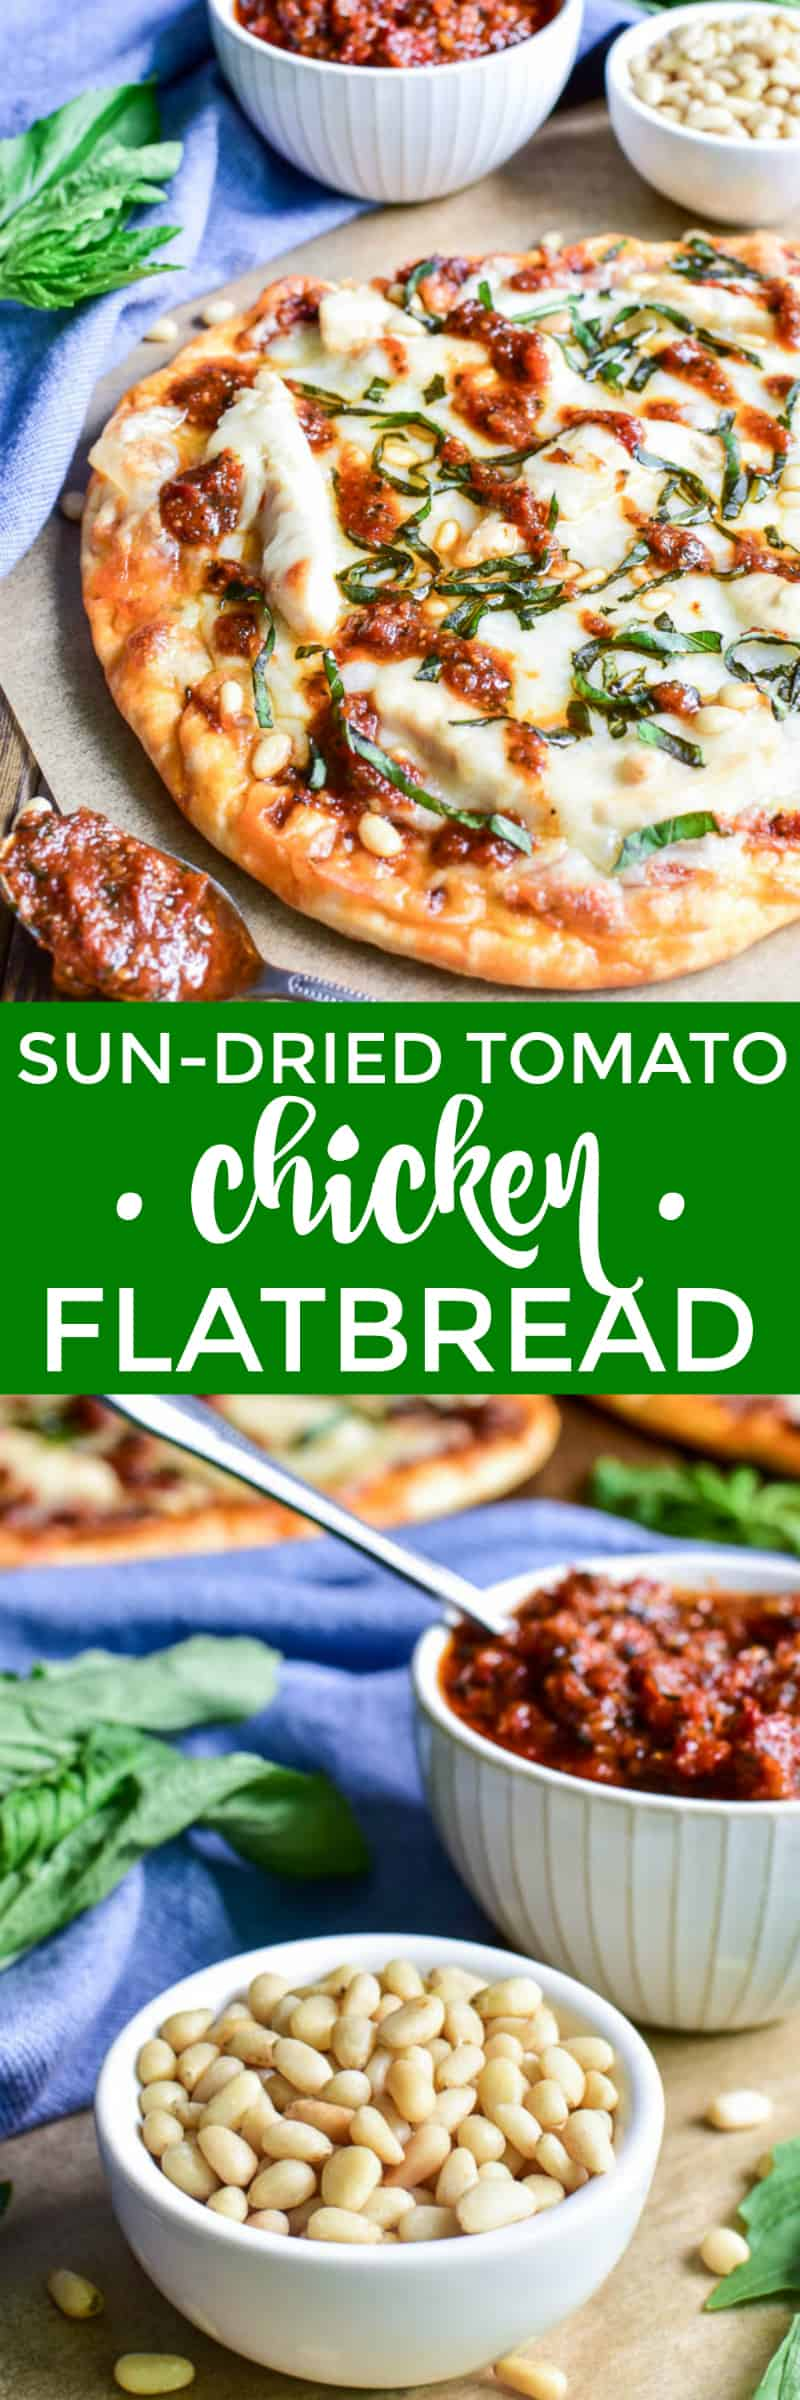 Collage image of Sun-Dried Tomato Chicken Flatbread with pine nuts and pesto